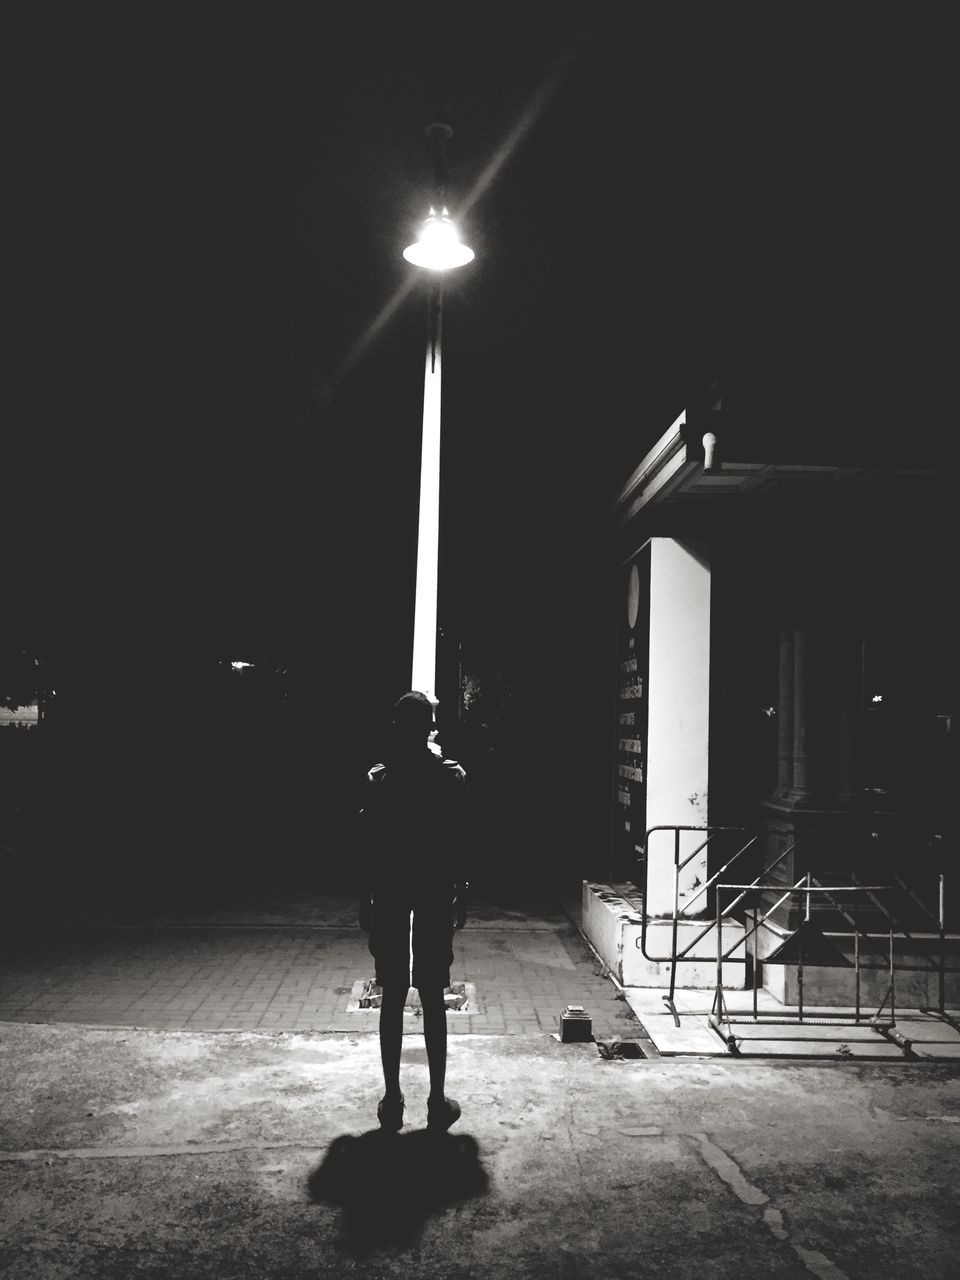 Full Length Rear View Of Man Standing On Illuminated Footpath At Night